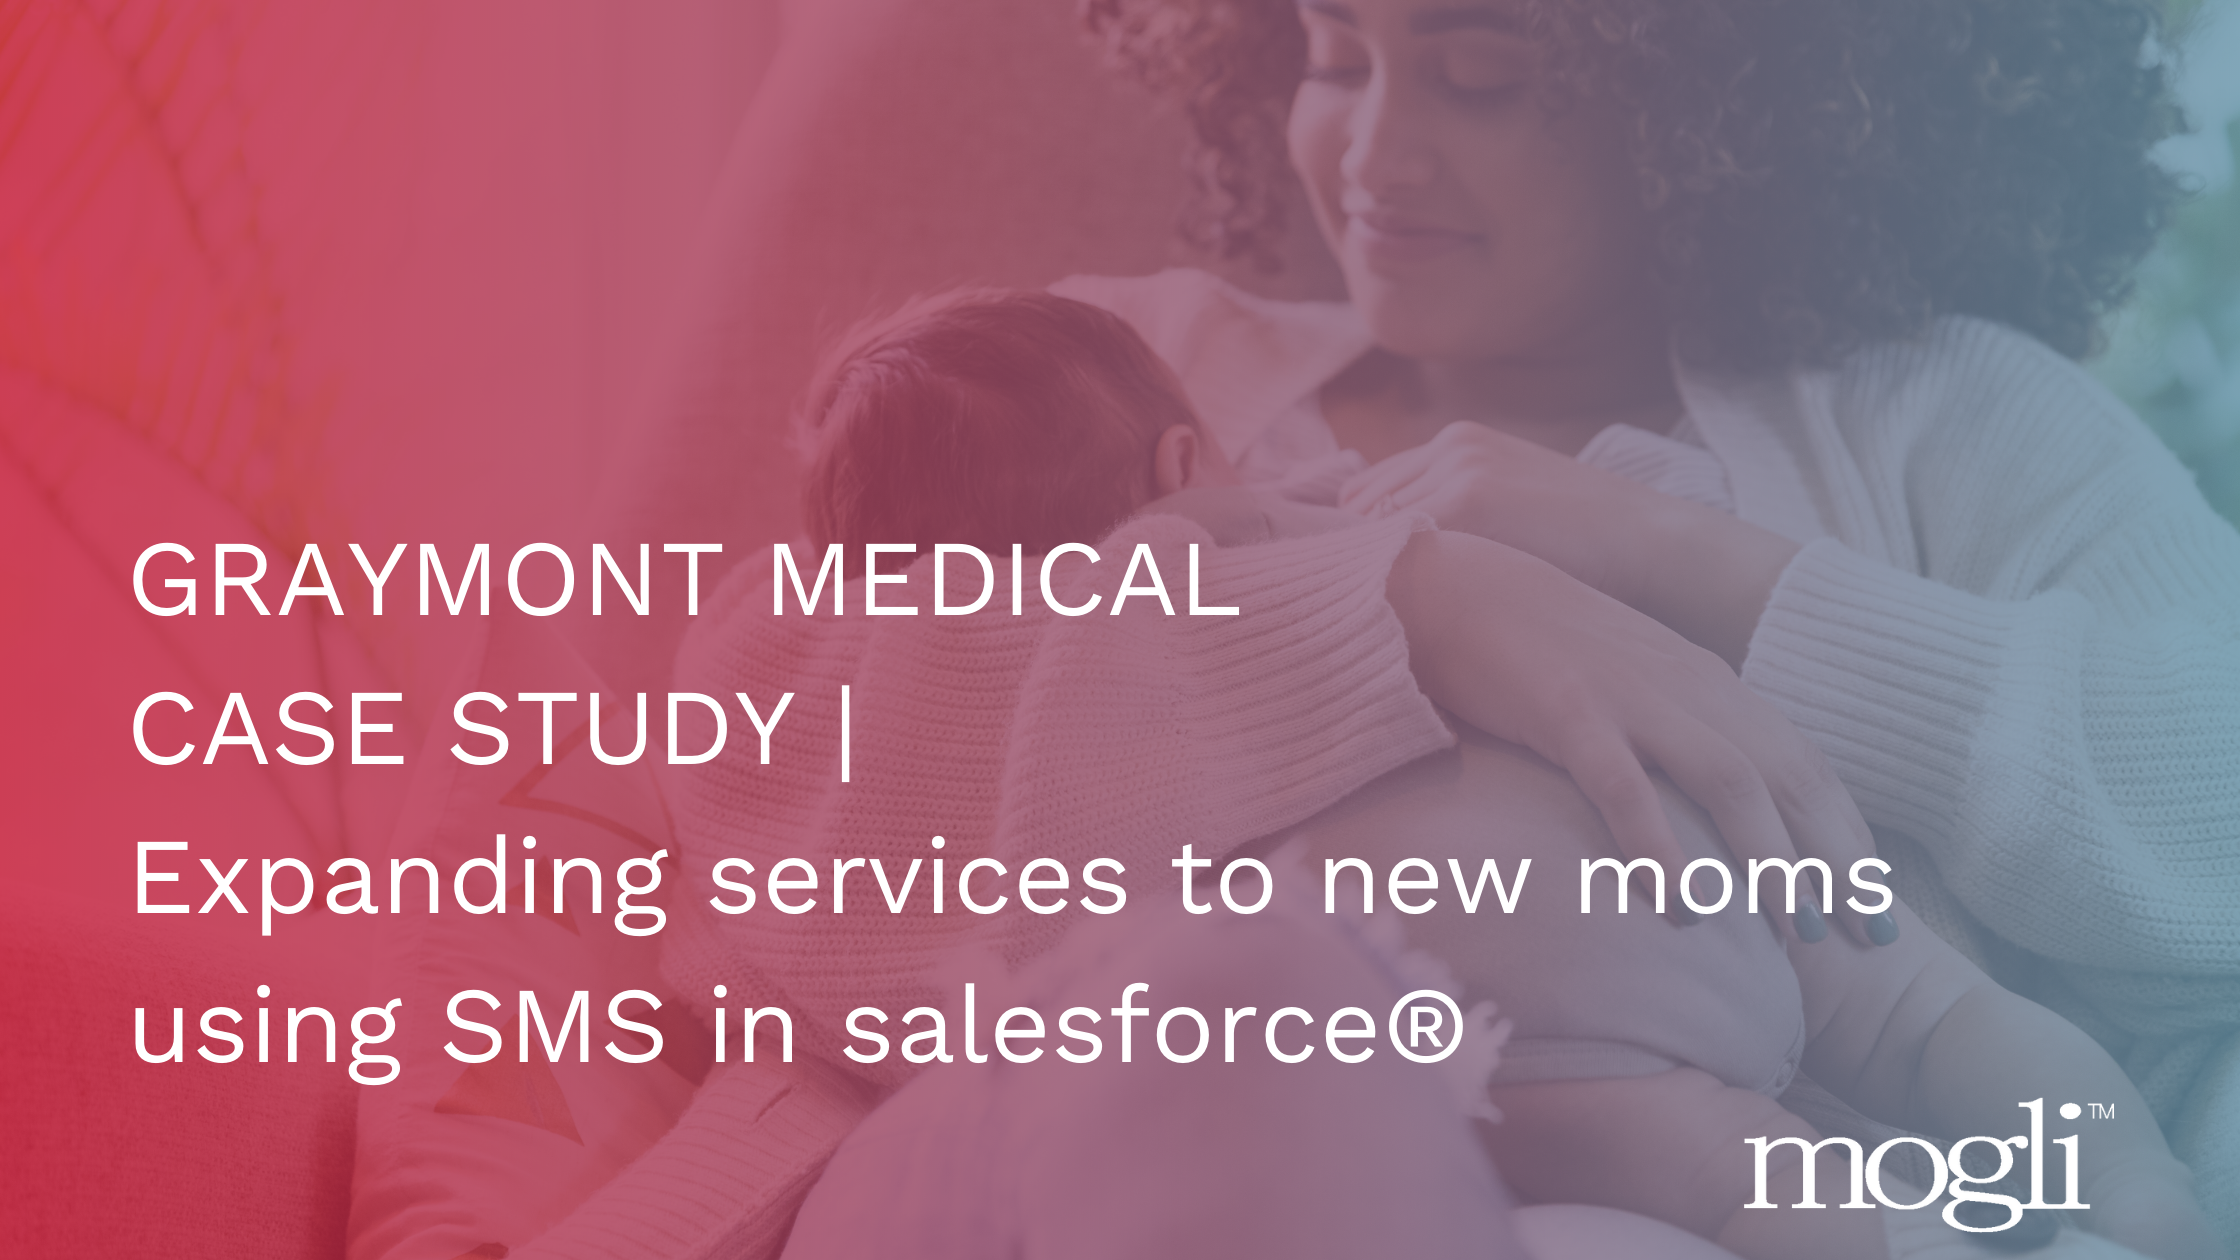 Graymont Medical SMS in Saleforce case study blog banner